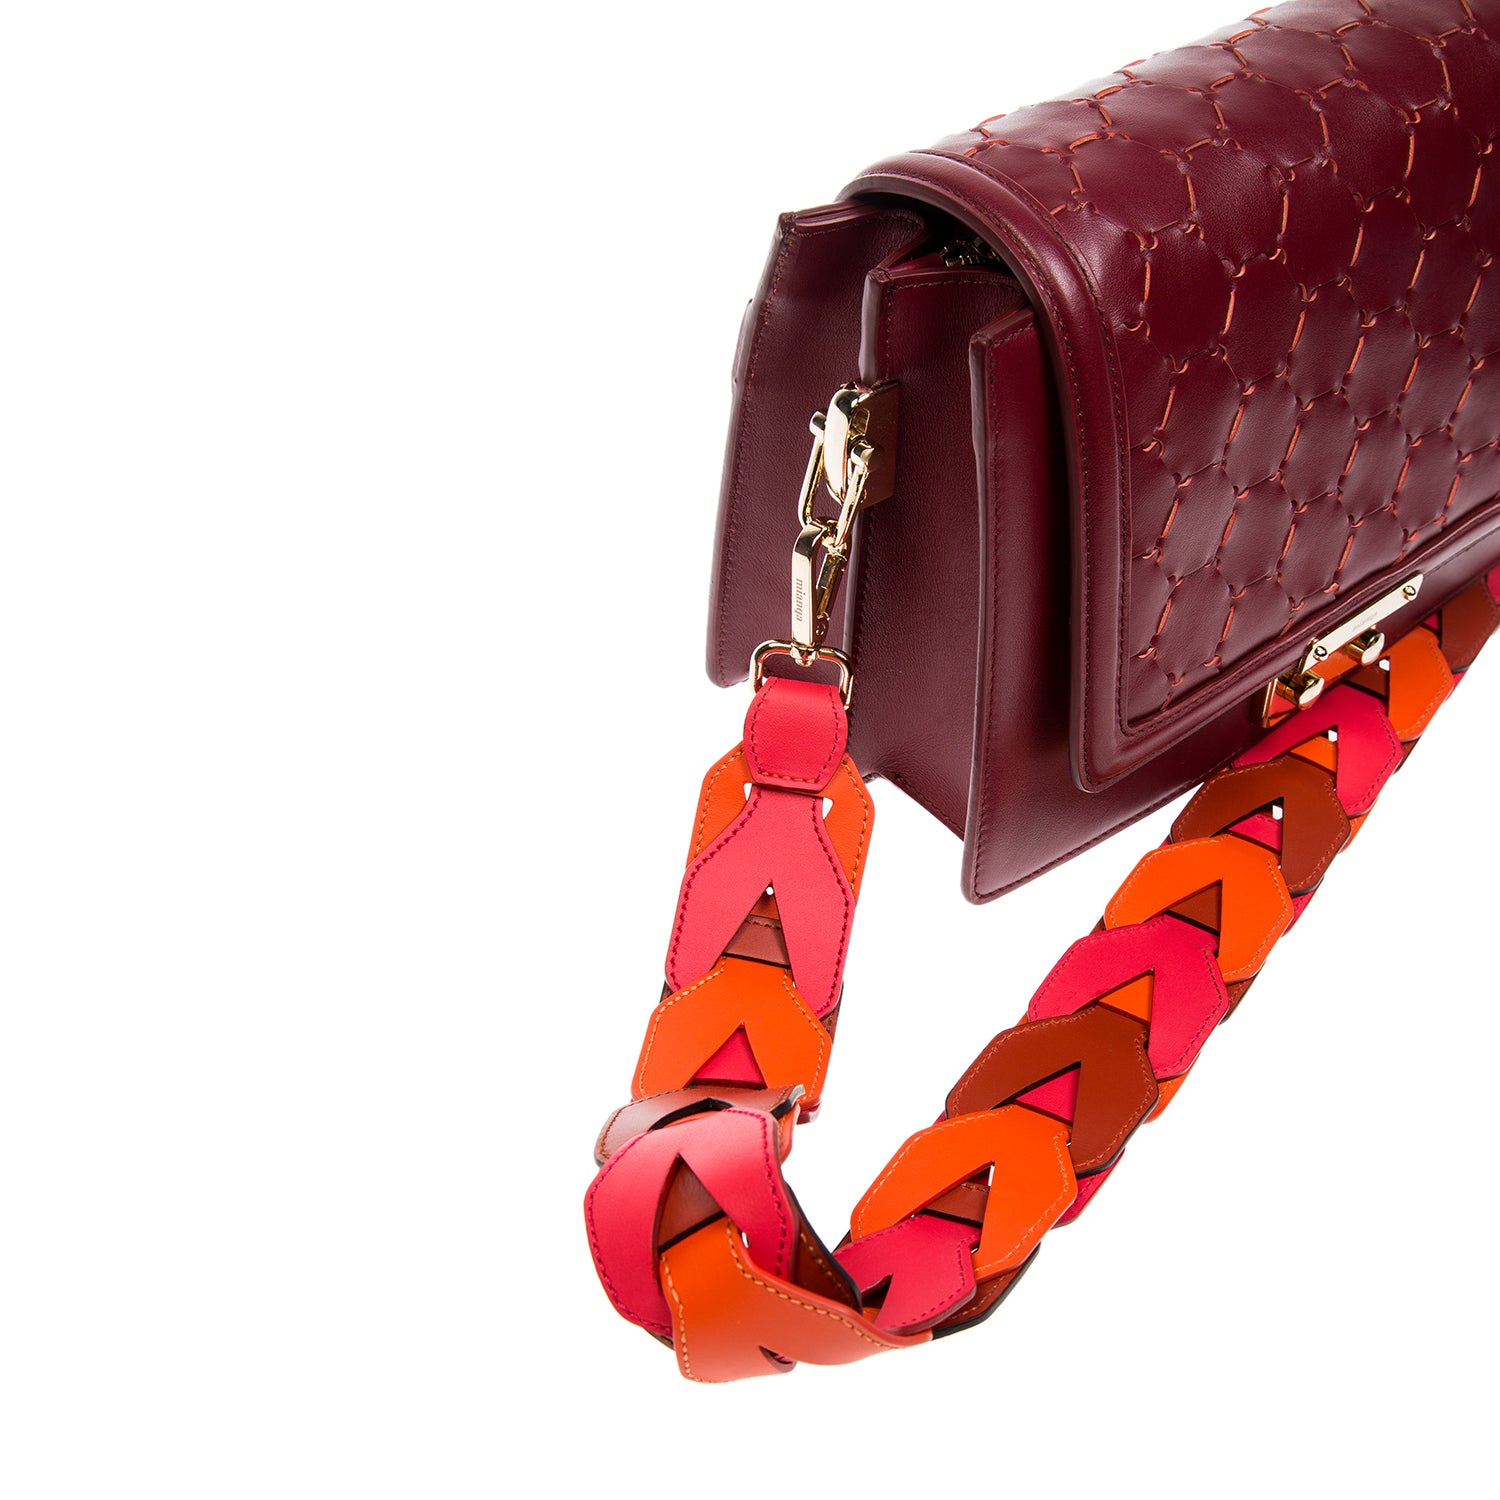 Woven Leather Shoulder Strap Red Orange